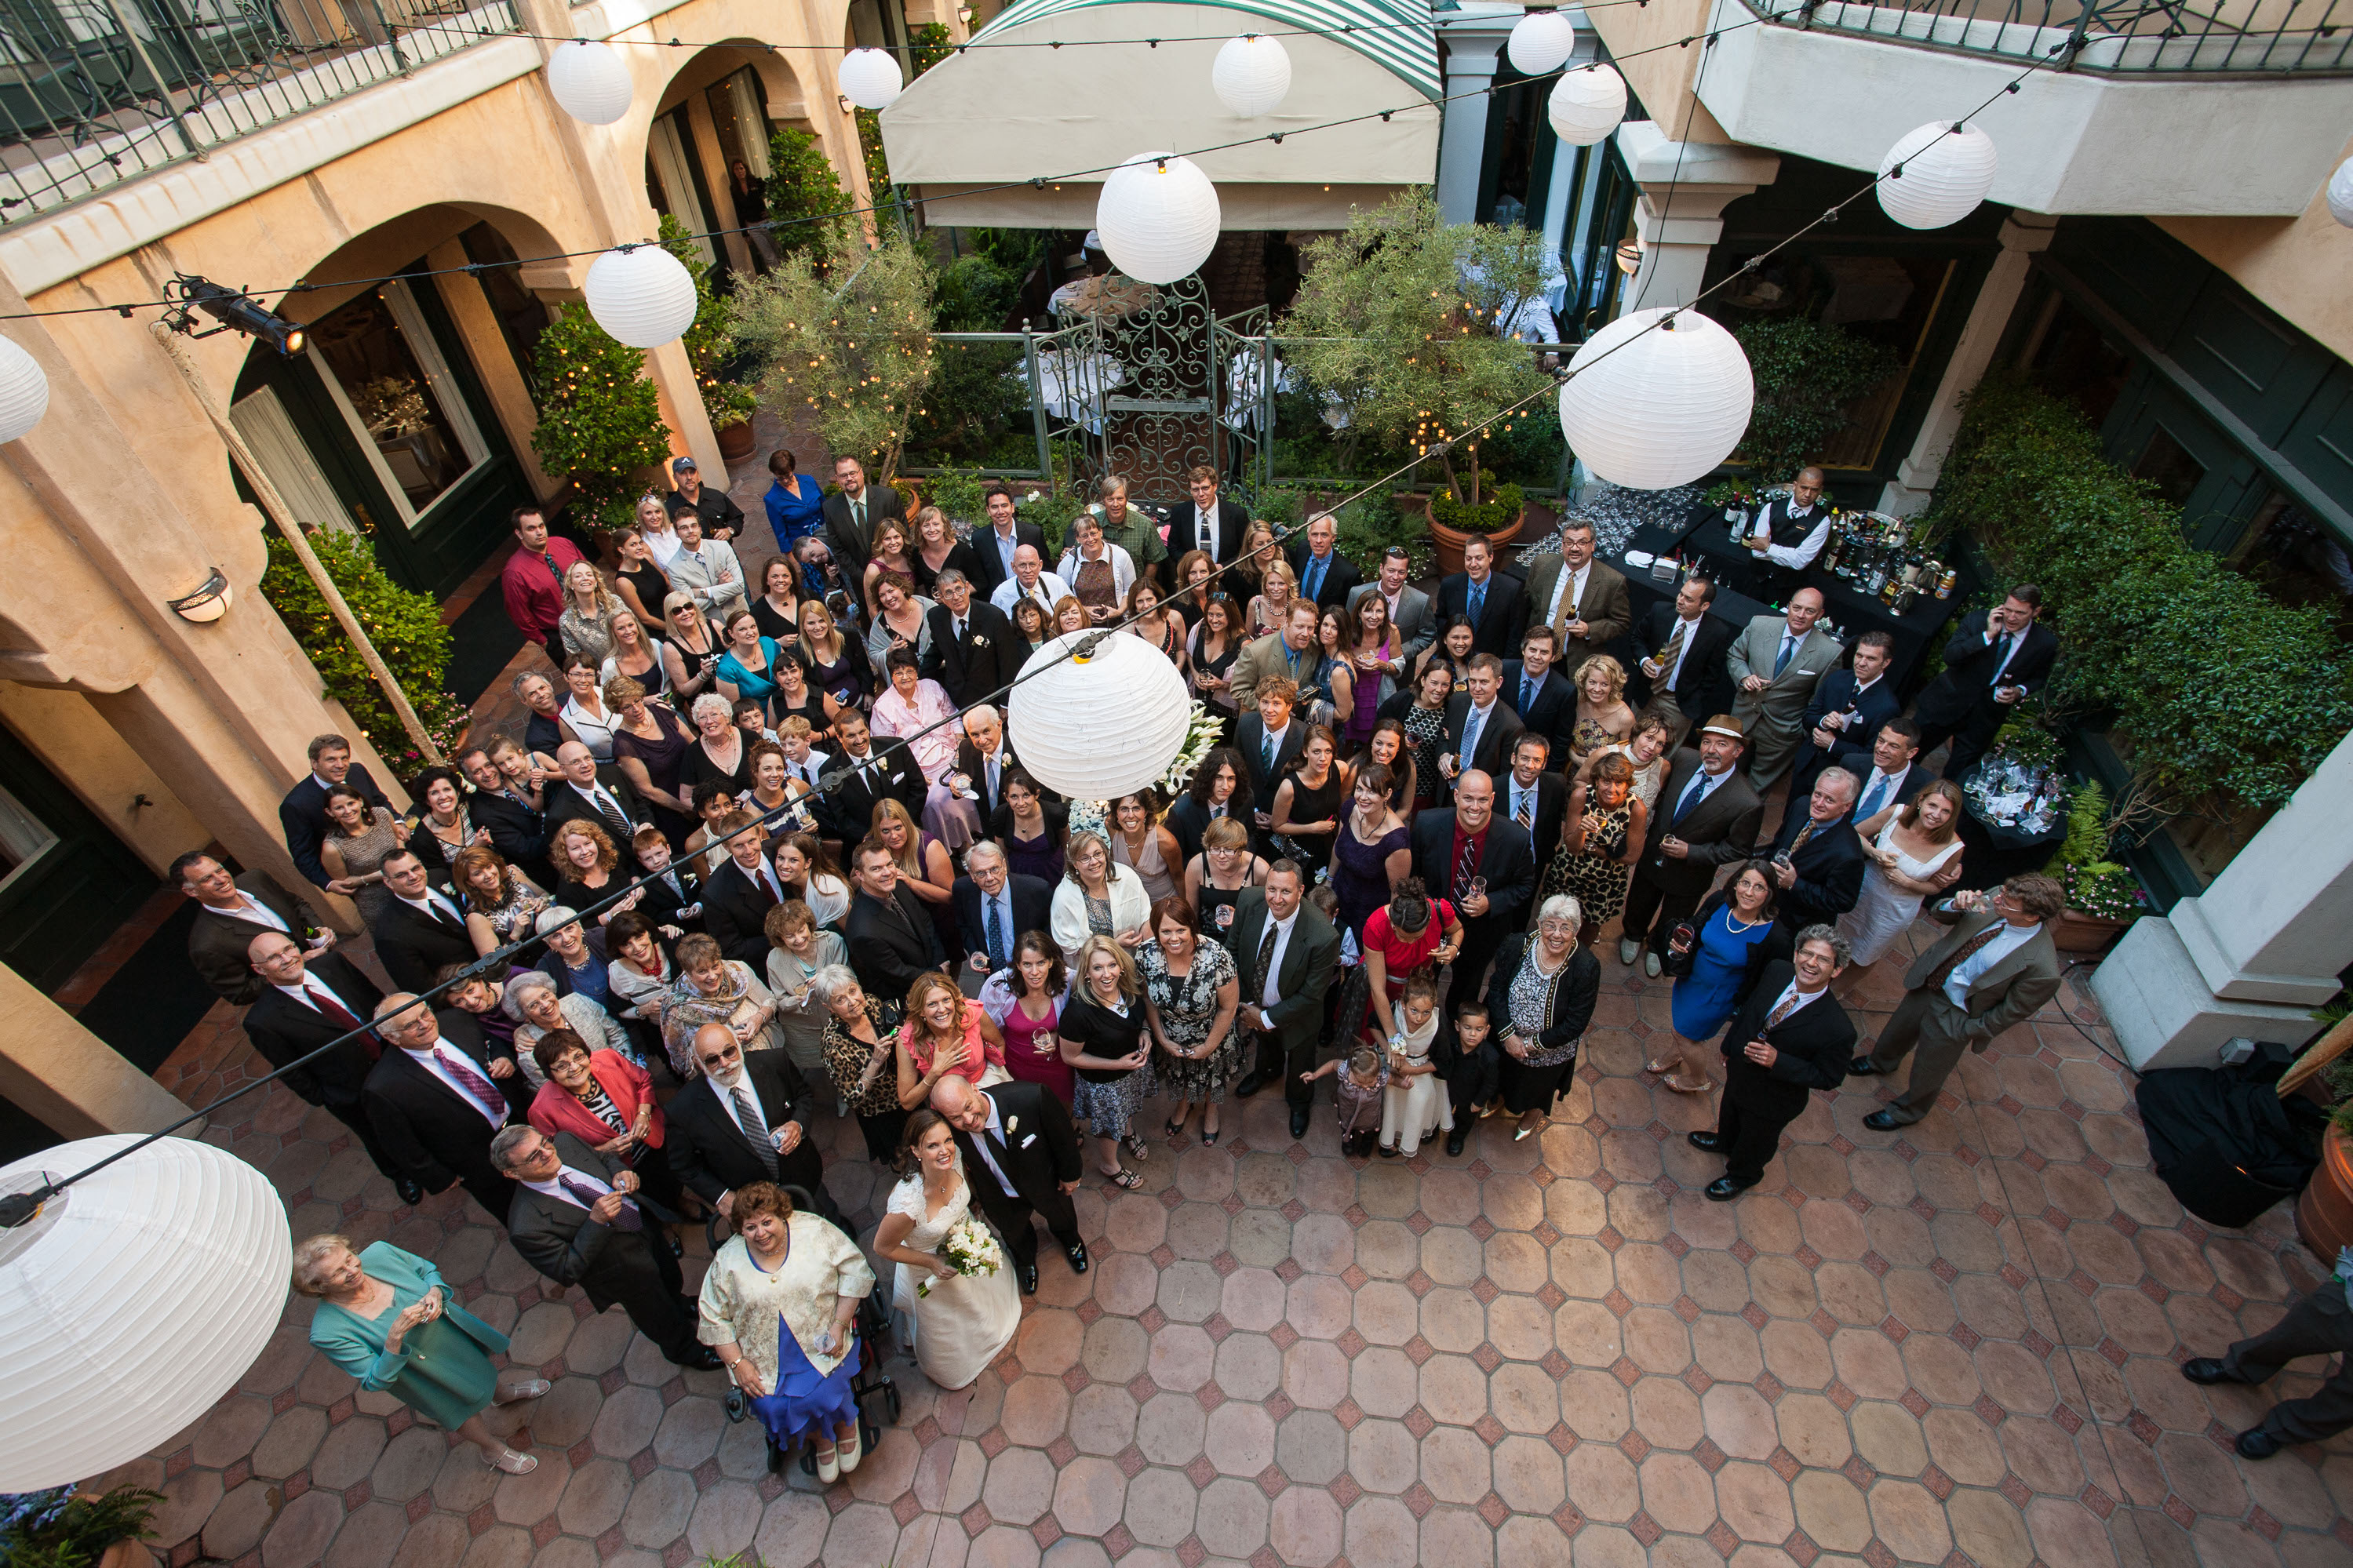 The Bride And Groom Surrounded By Their Entire Assembled Guests In The  Courtyard Of The Garden